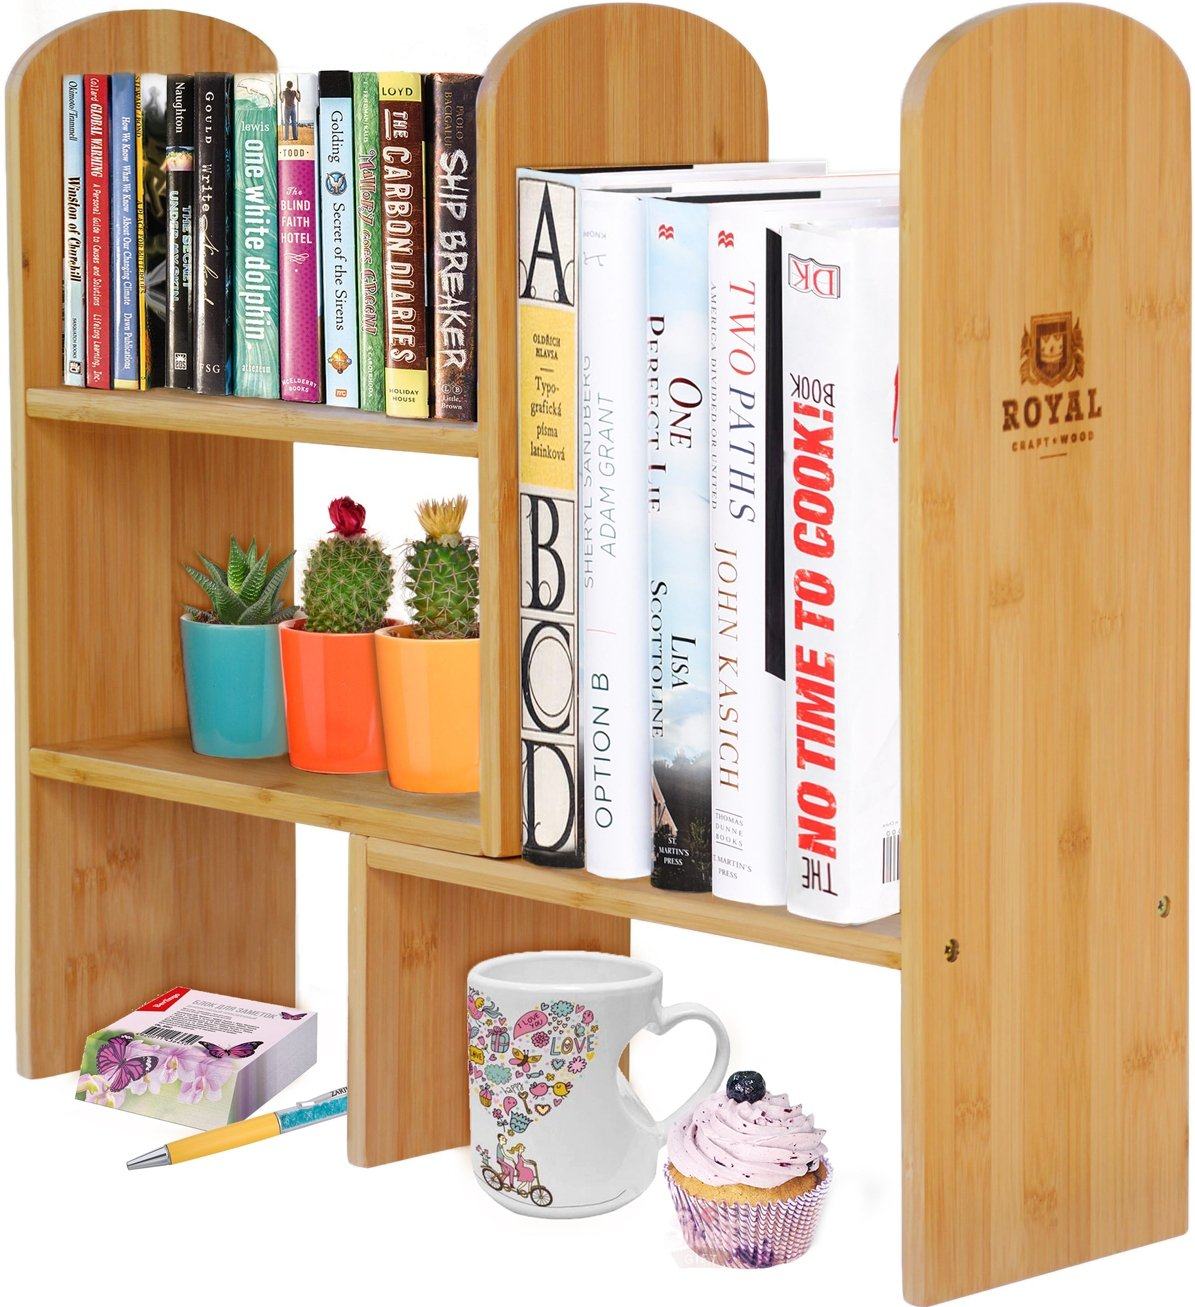 Expandable Natural Bamboo Desk Organizer Accessory - Adjustable Desktop Shelf Rack - Multipurpose Display for Office (Books) | Kitchen Storage (Spice Rack) | Flowers and Plants. by Royal Craft Wood